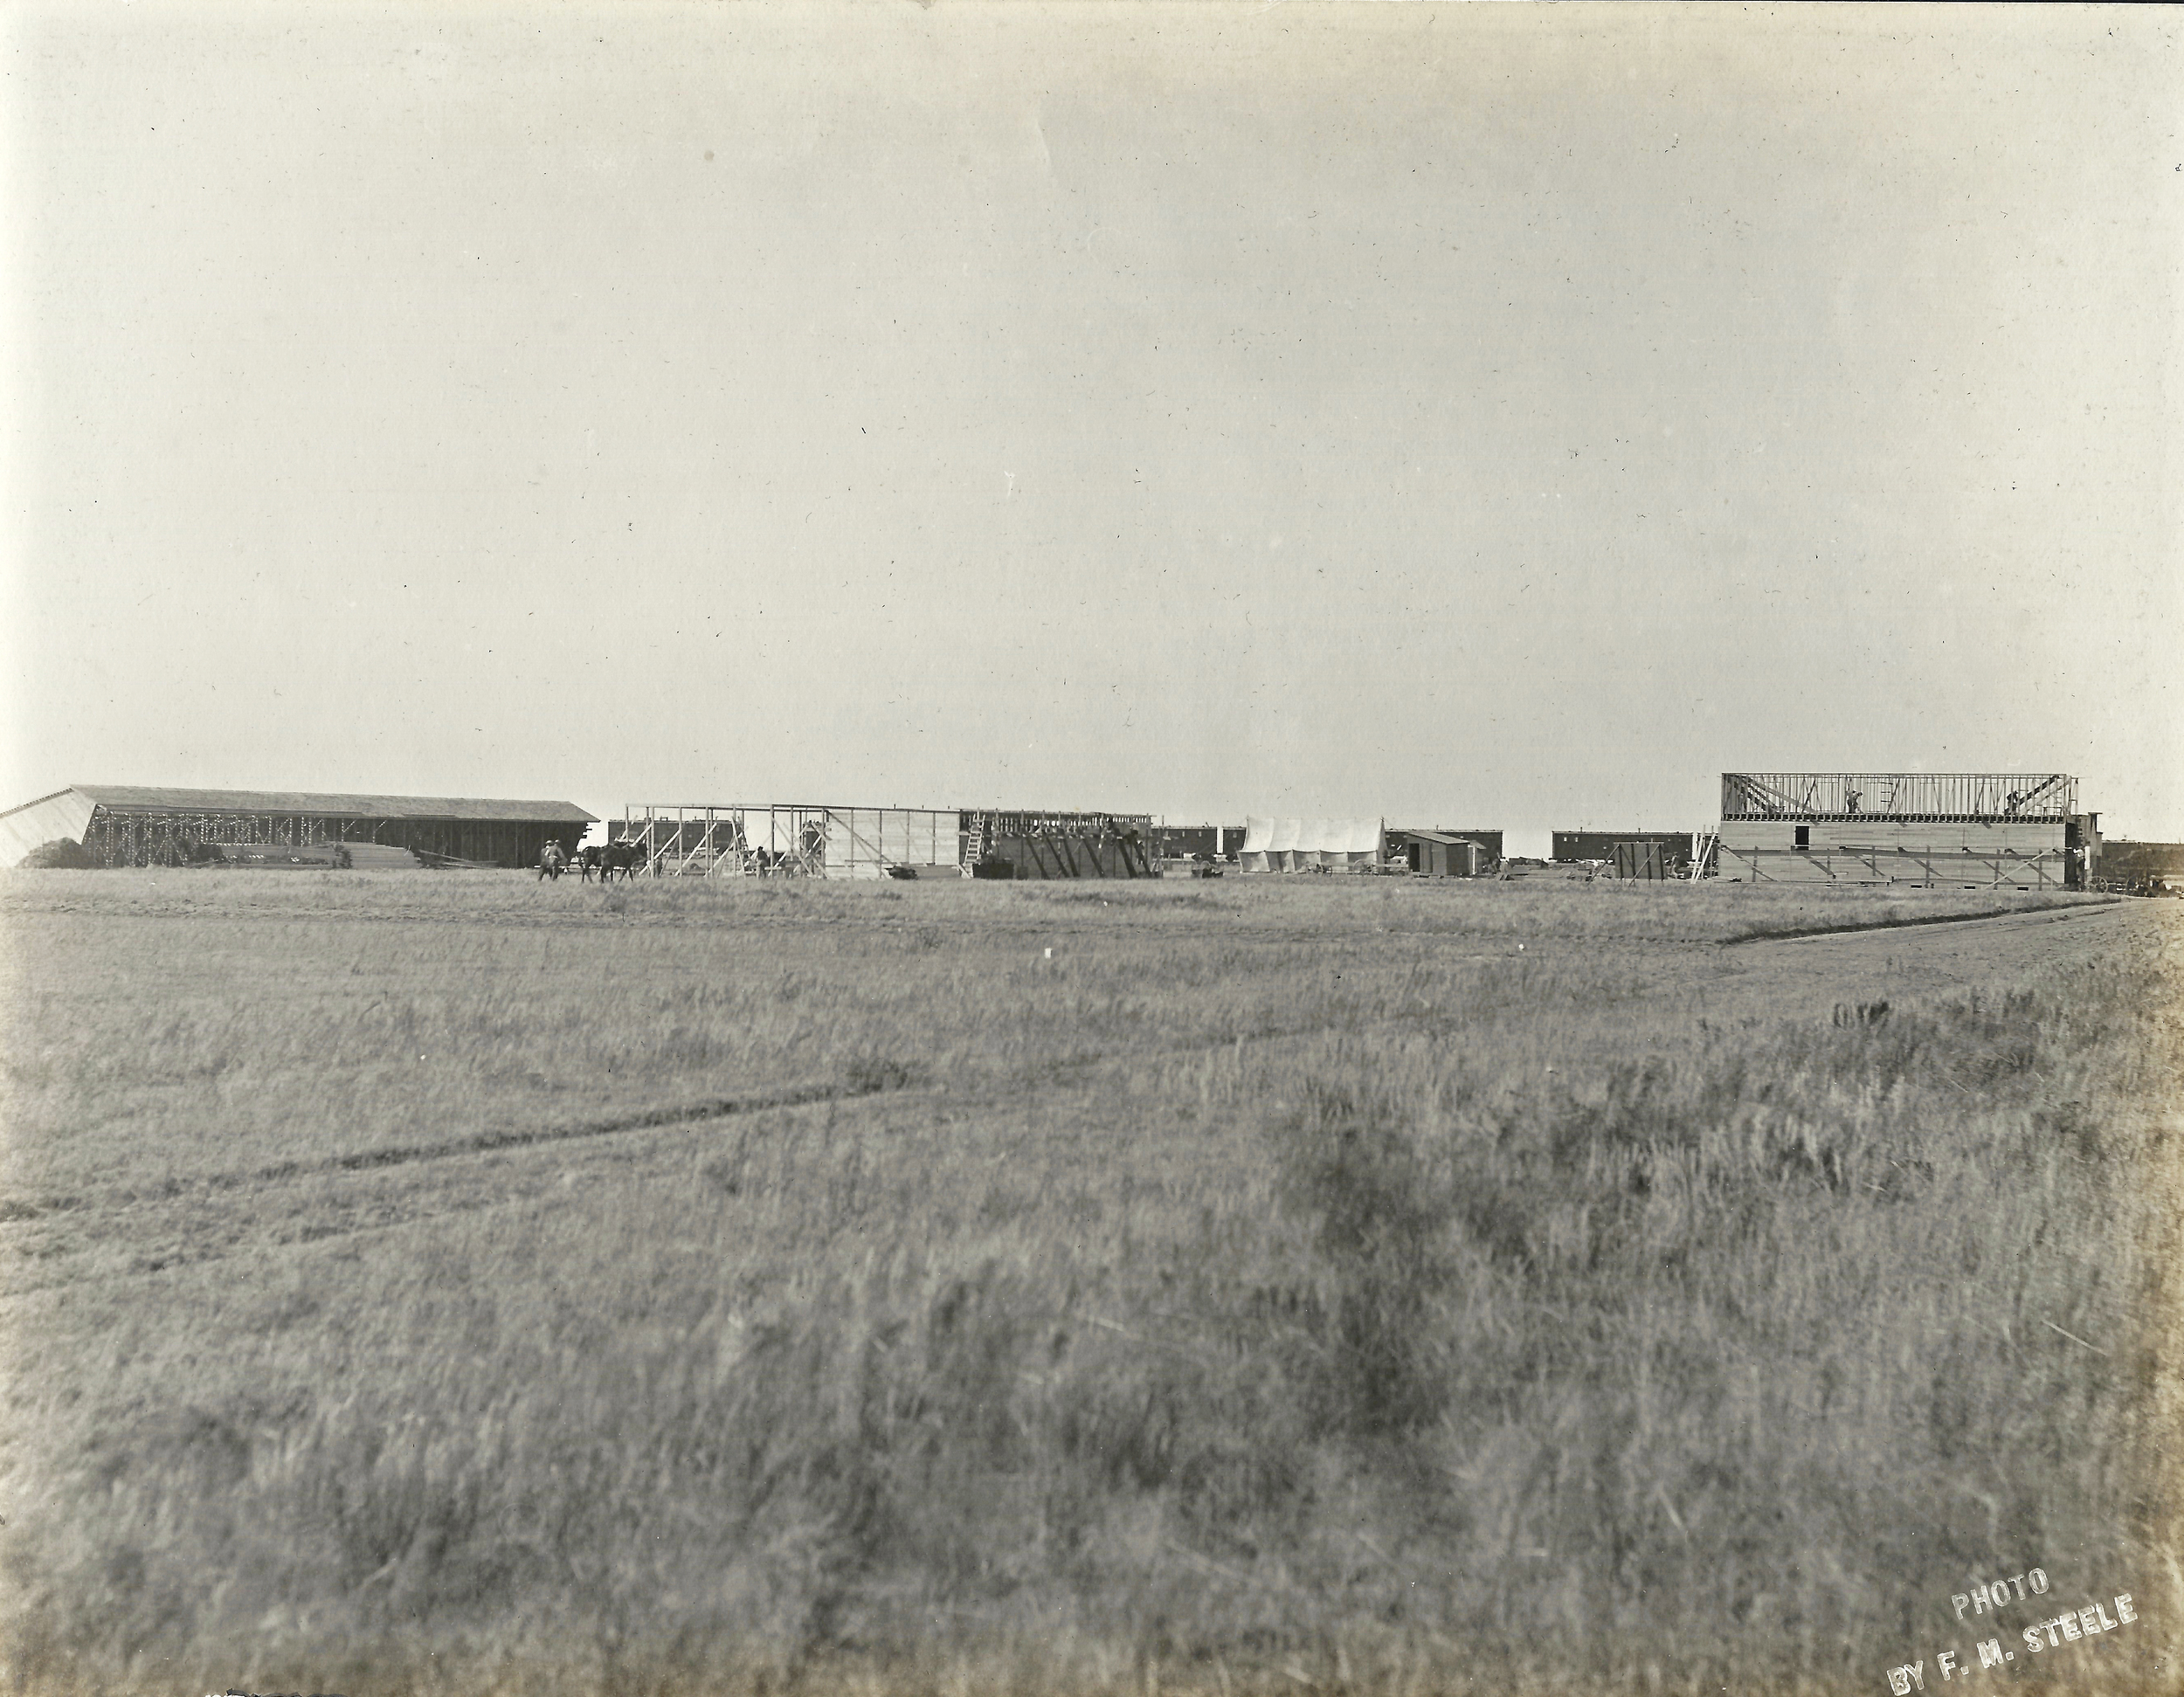 Construction on the new town, Sublette - 1912   In the background you will notice the rail cars in use on the newly laid track. The buffalo grass has been cut short to mark the new main street with construction on the first building in Sublette, The Cave Mercantile.